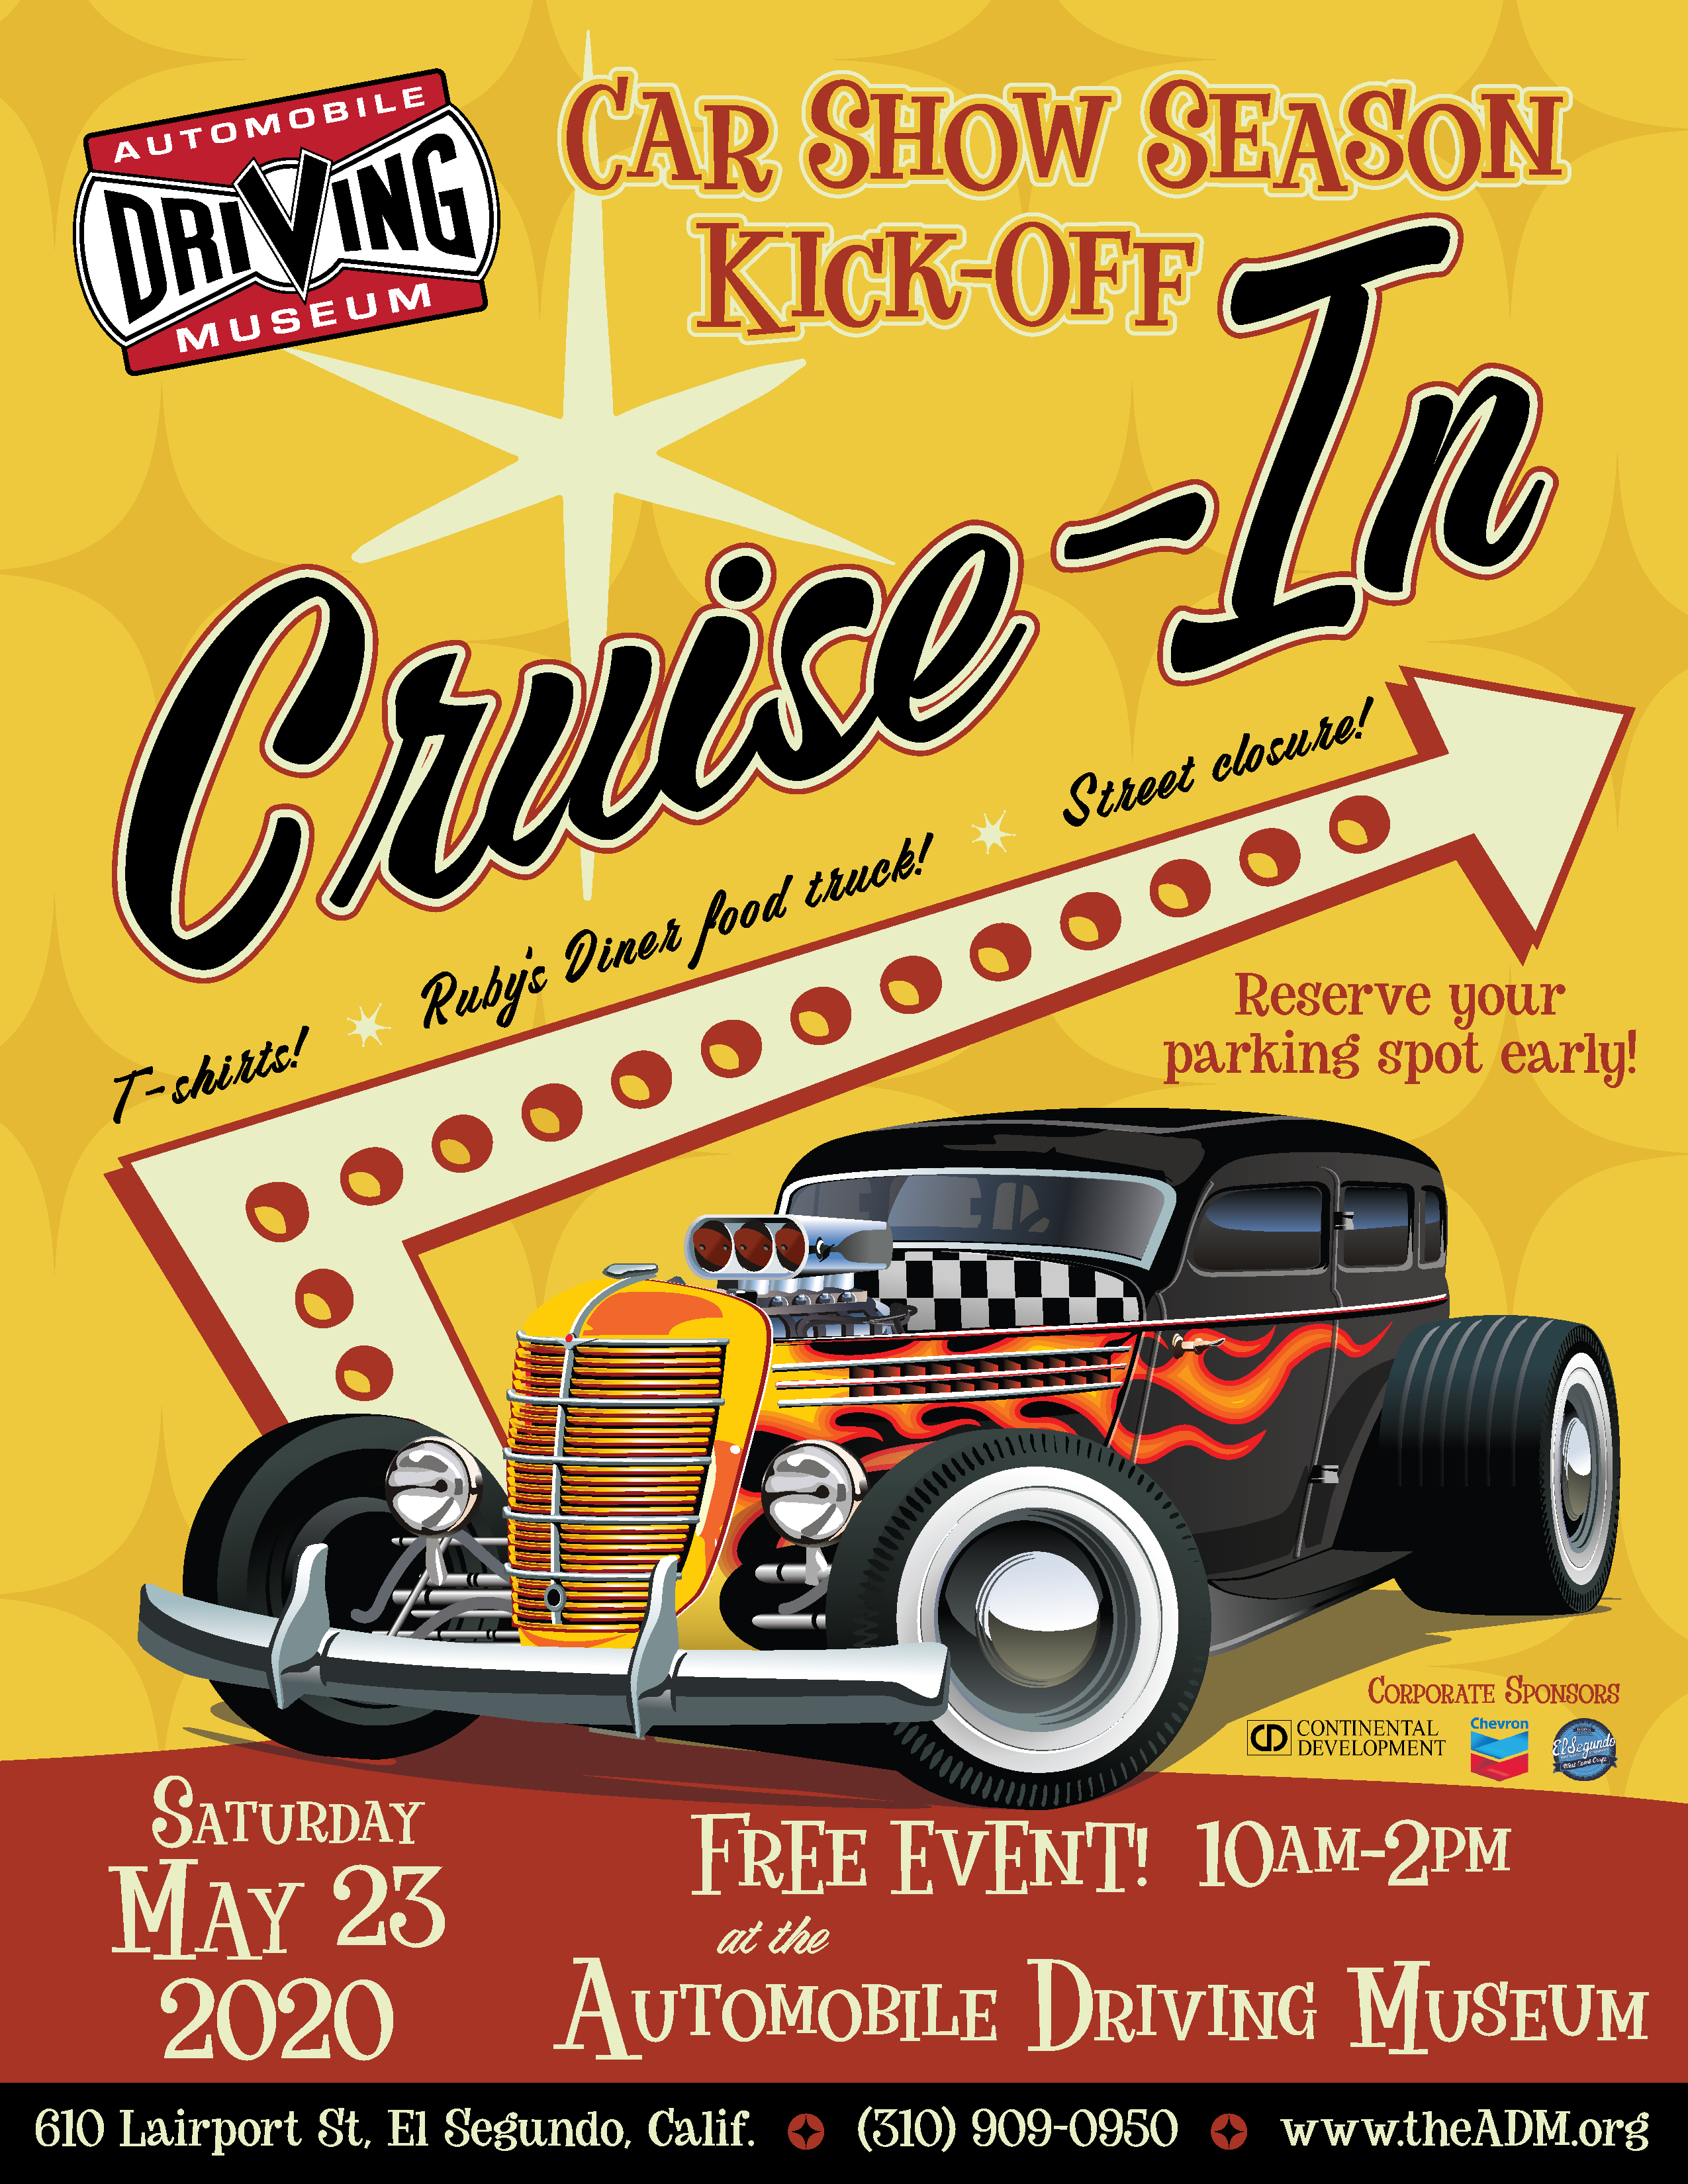 kickoff cruise car show in El Segundo